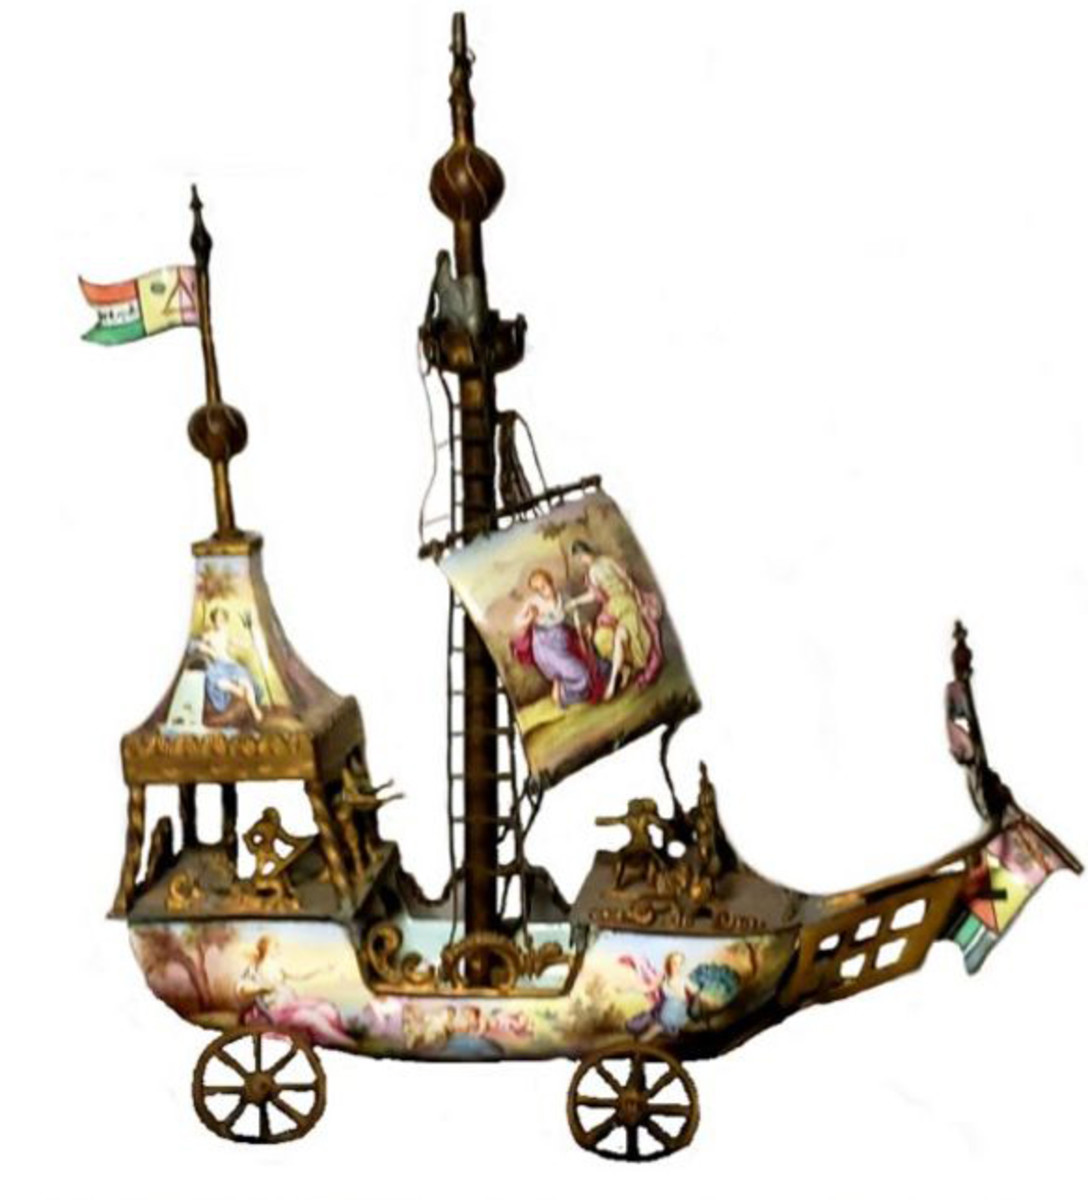 This nineteenth century, hand-painted, enamel, Austrian, silver and gilt ship on wheels was made strictly for ornamentation.